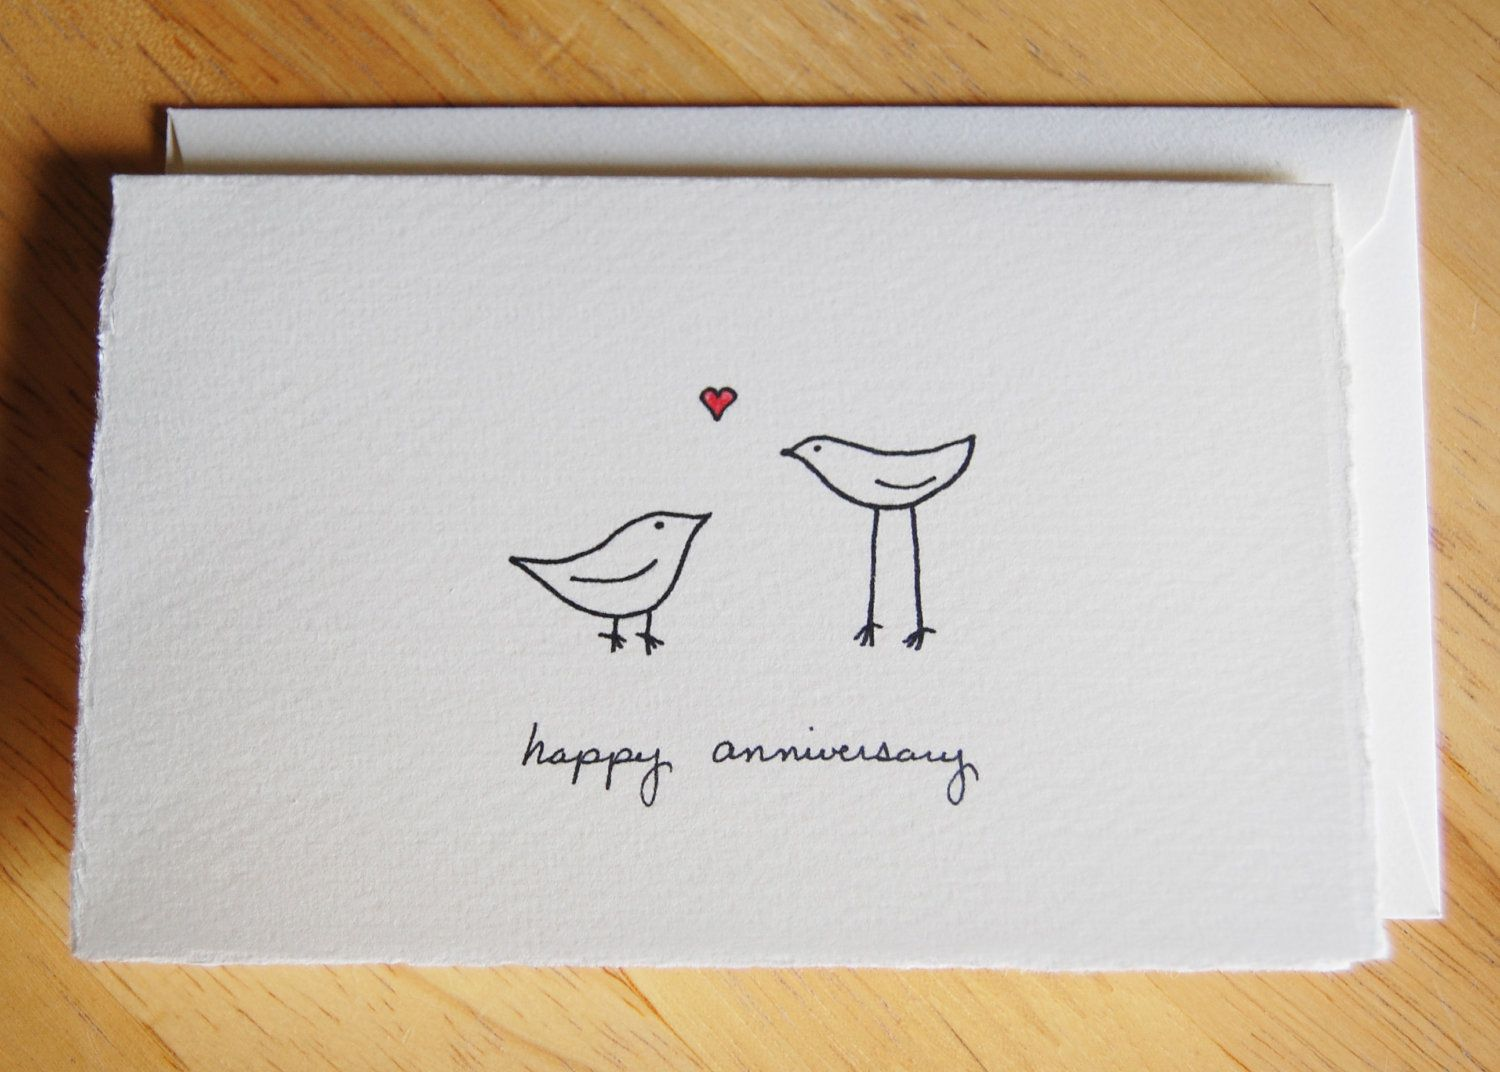 Love Quotes For Him Drawing : Card - Simple Love Birds Drawing - Happy Anniversary Love ...